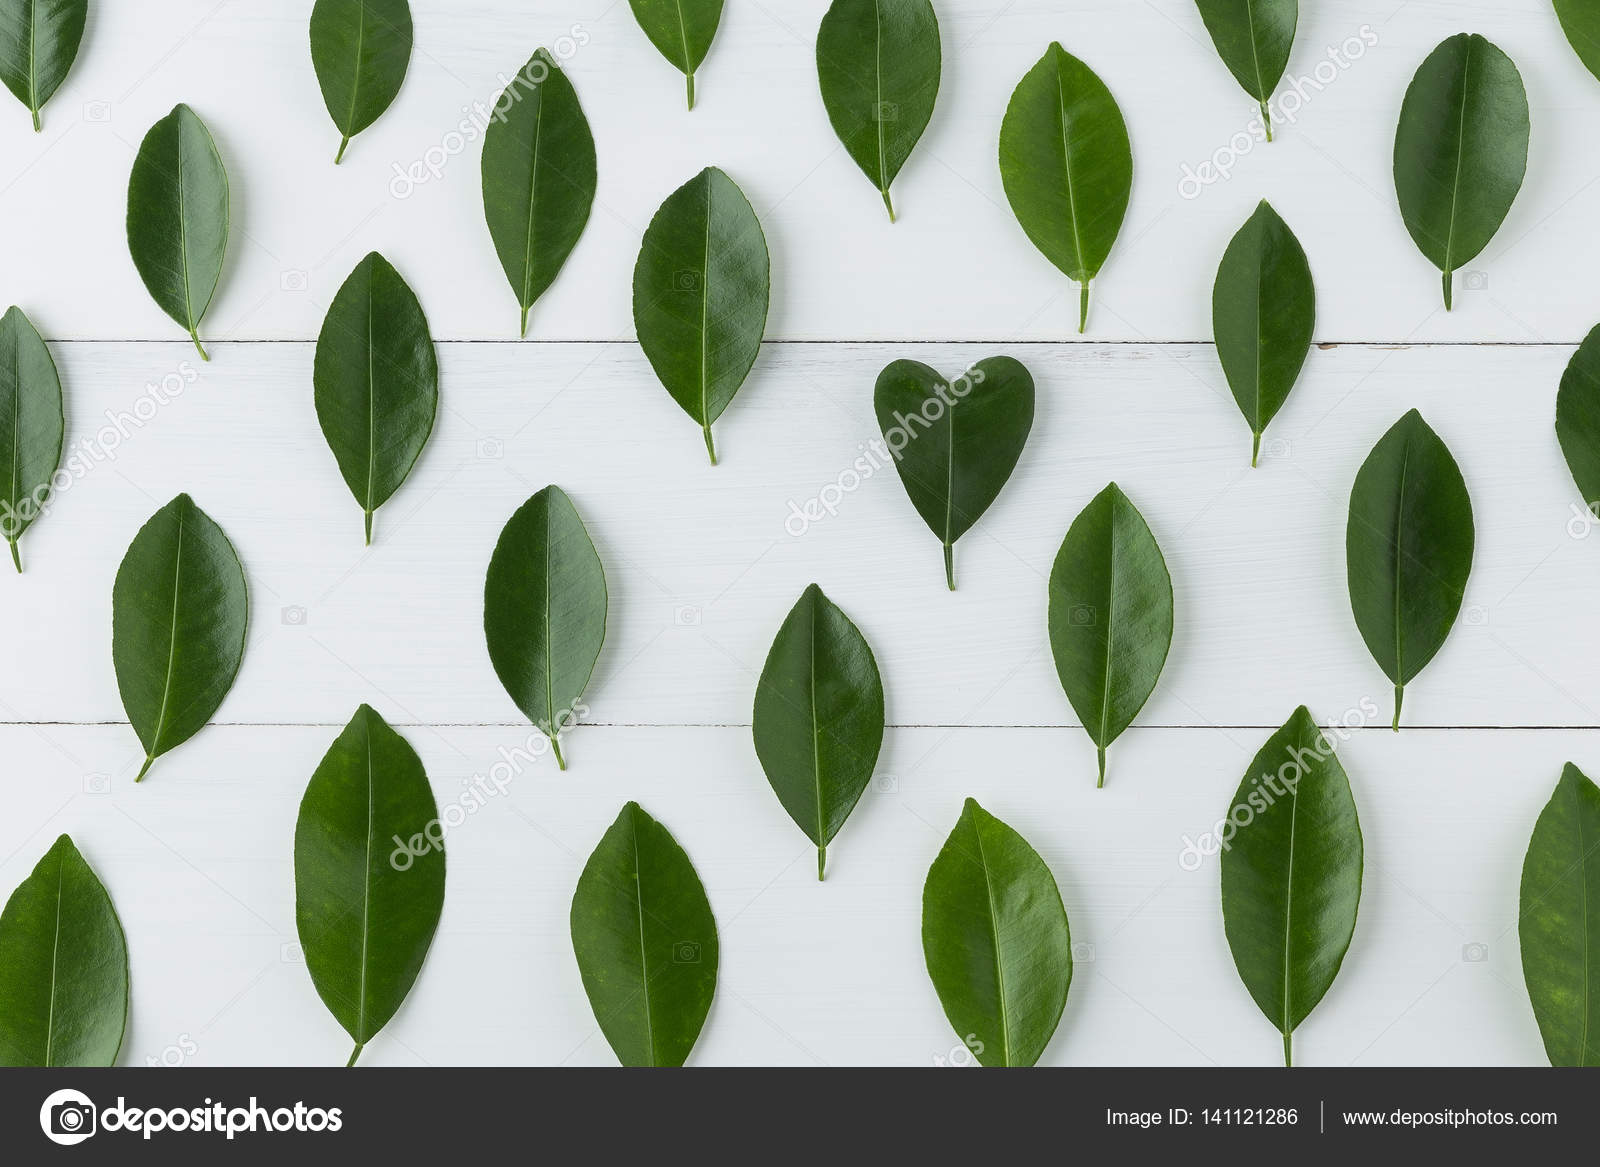 Foglie A Cuore Pianta pattern of lemon leaves with heart shape on white table